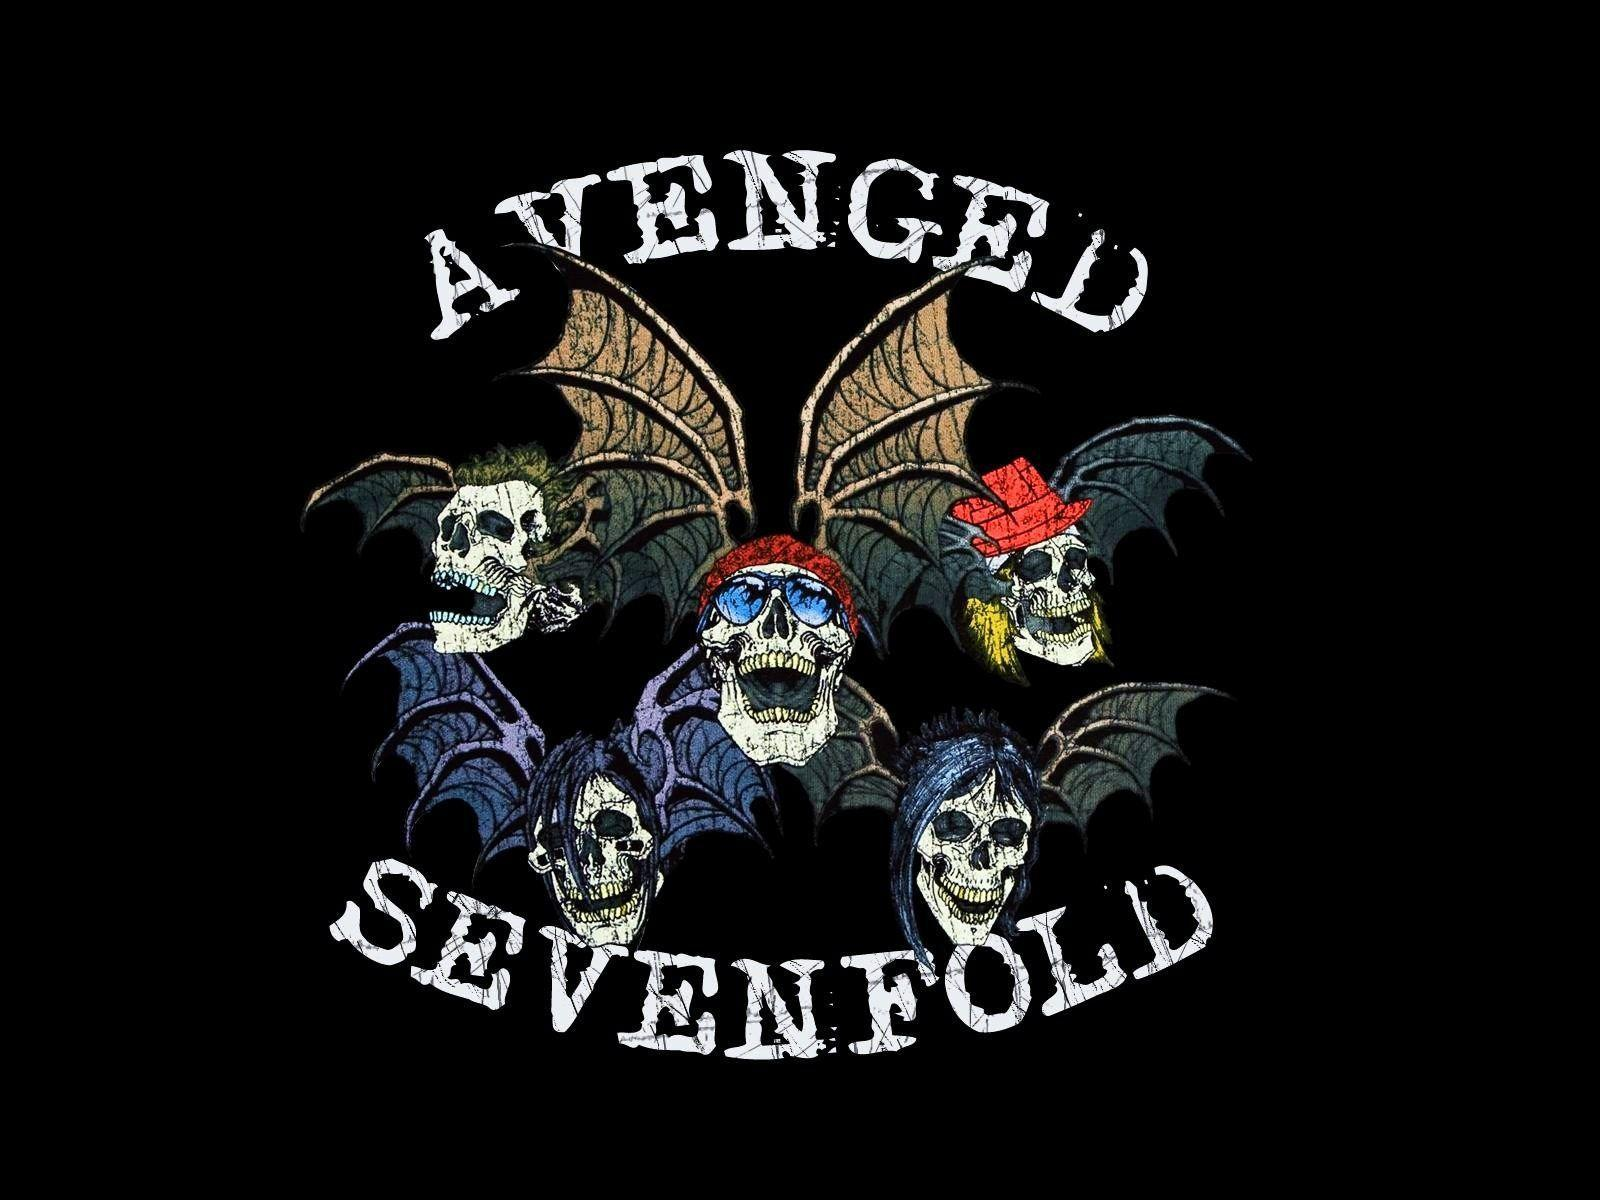 Avenged Sevenfold 2015 Wallpapers 1600x1200